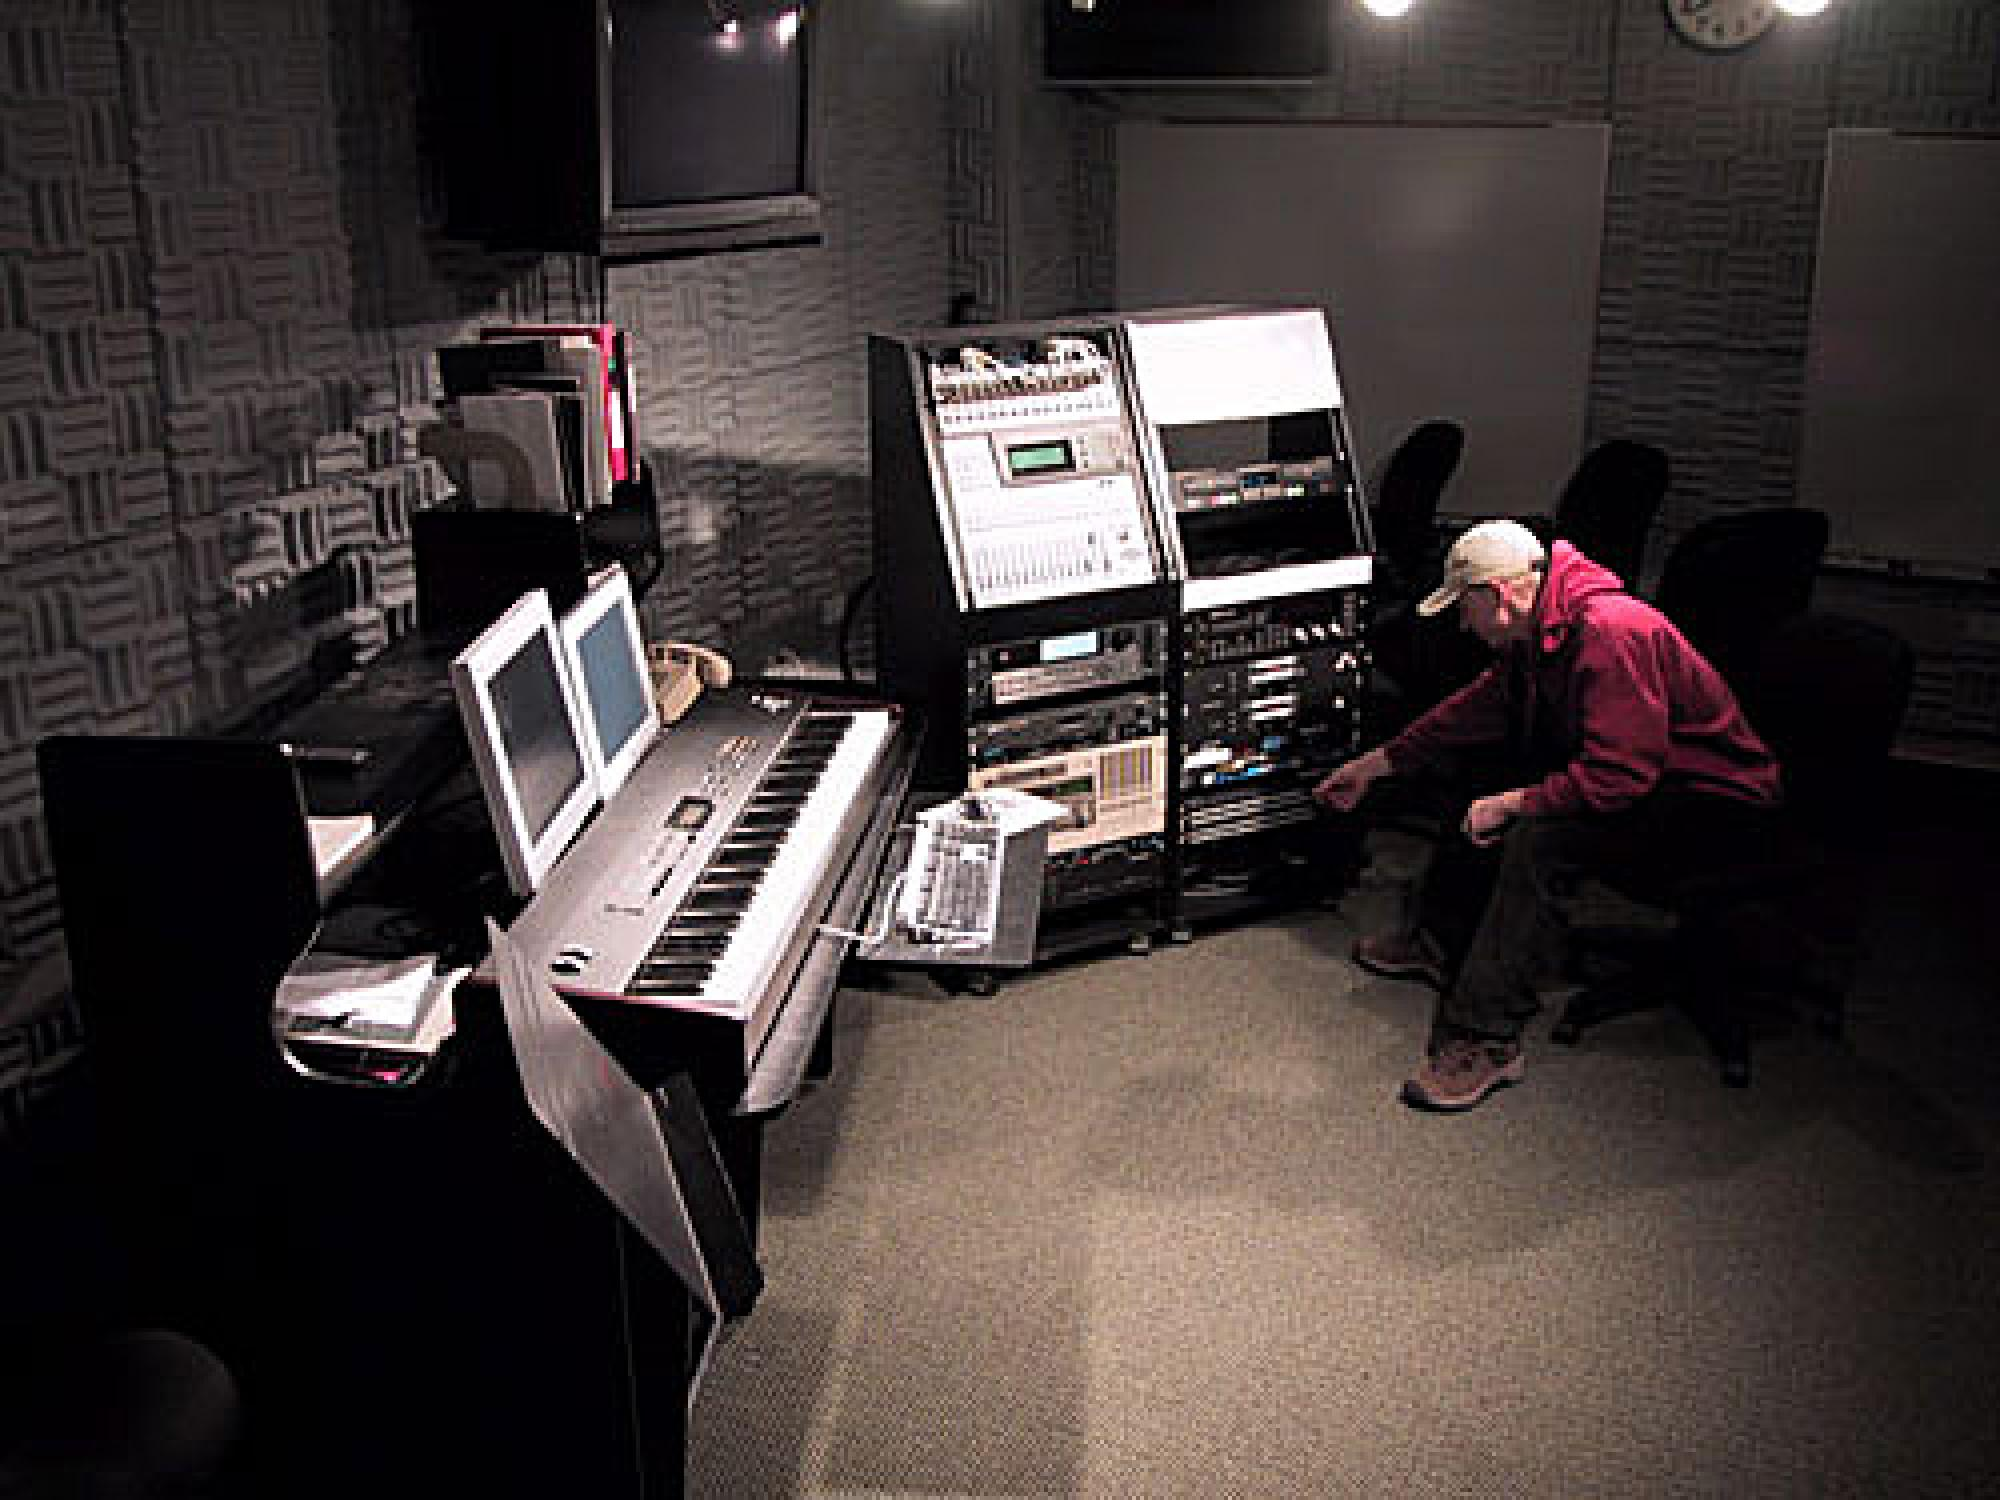 Bucksbaum Electronic Music Studio